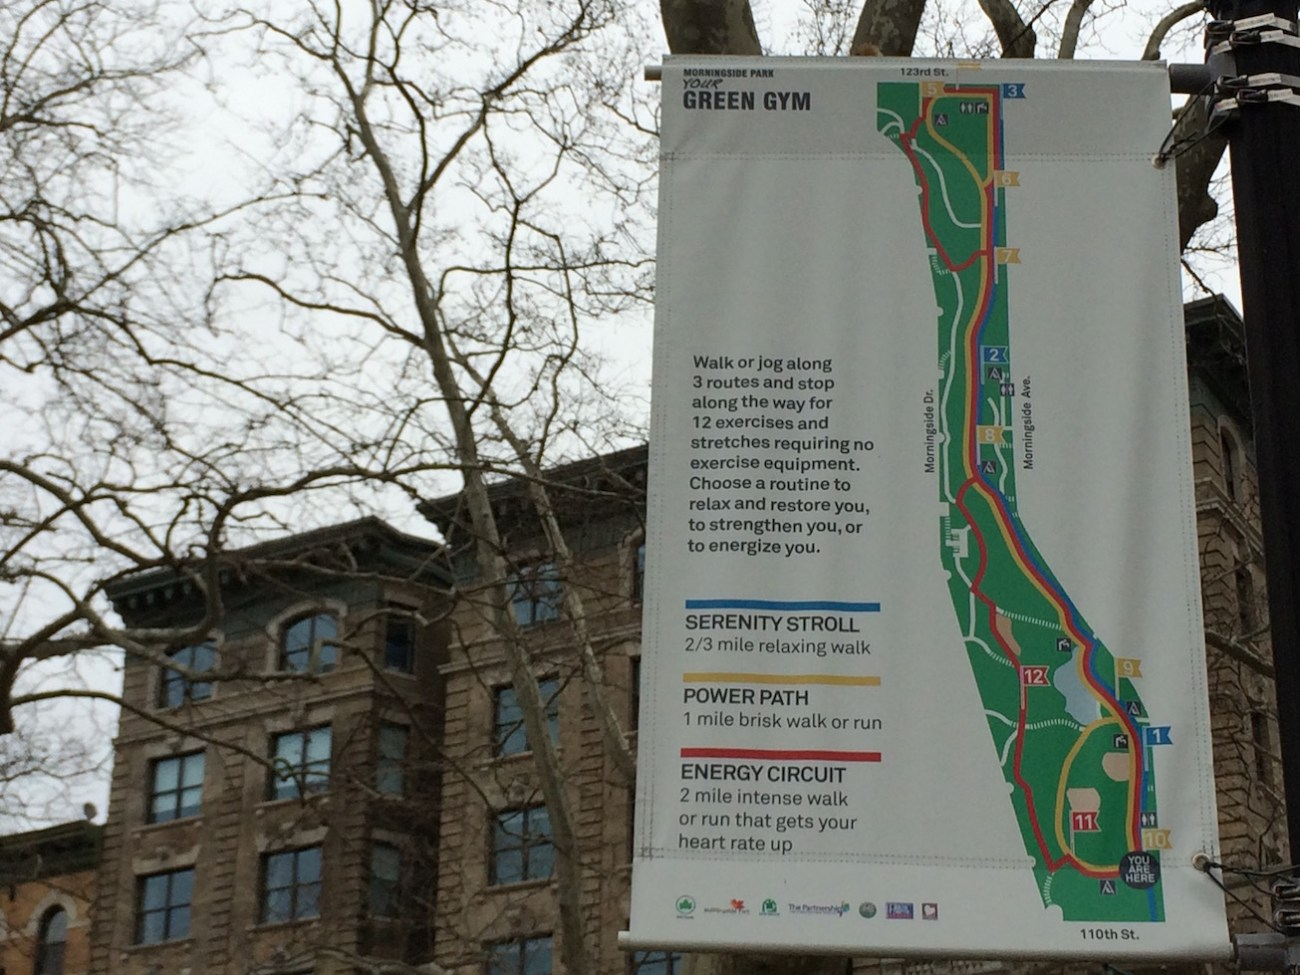 Morningside Park Your Green Gym Running Paths